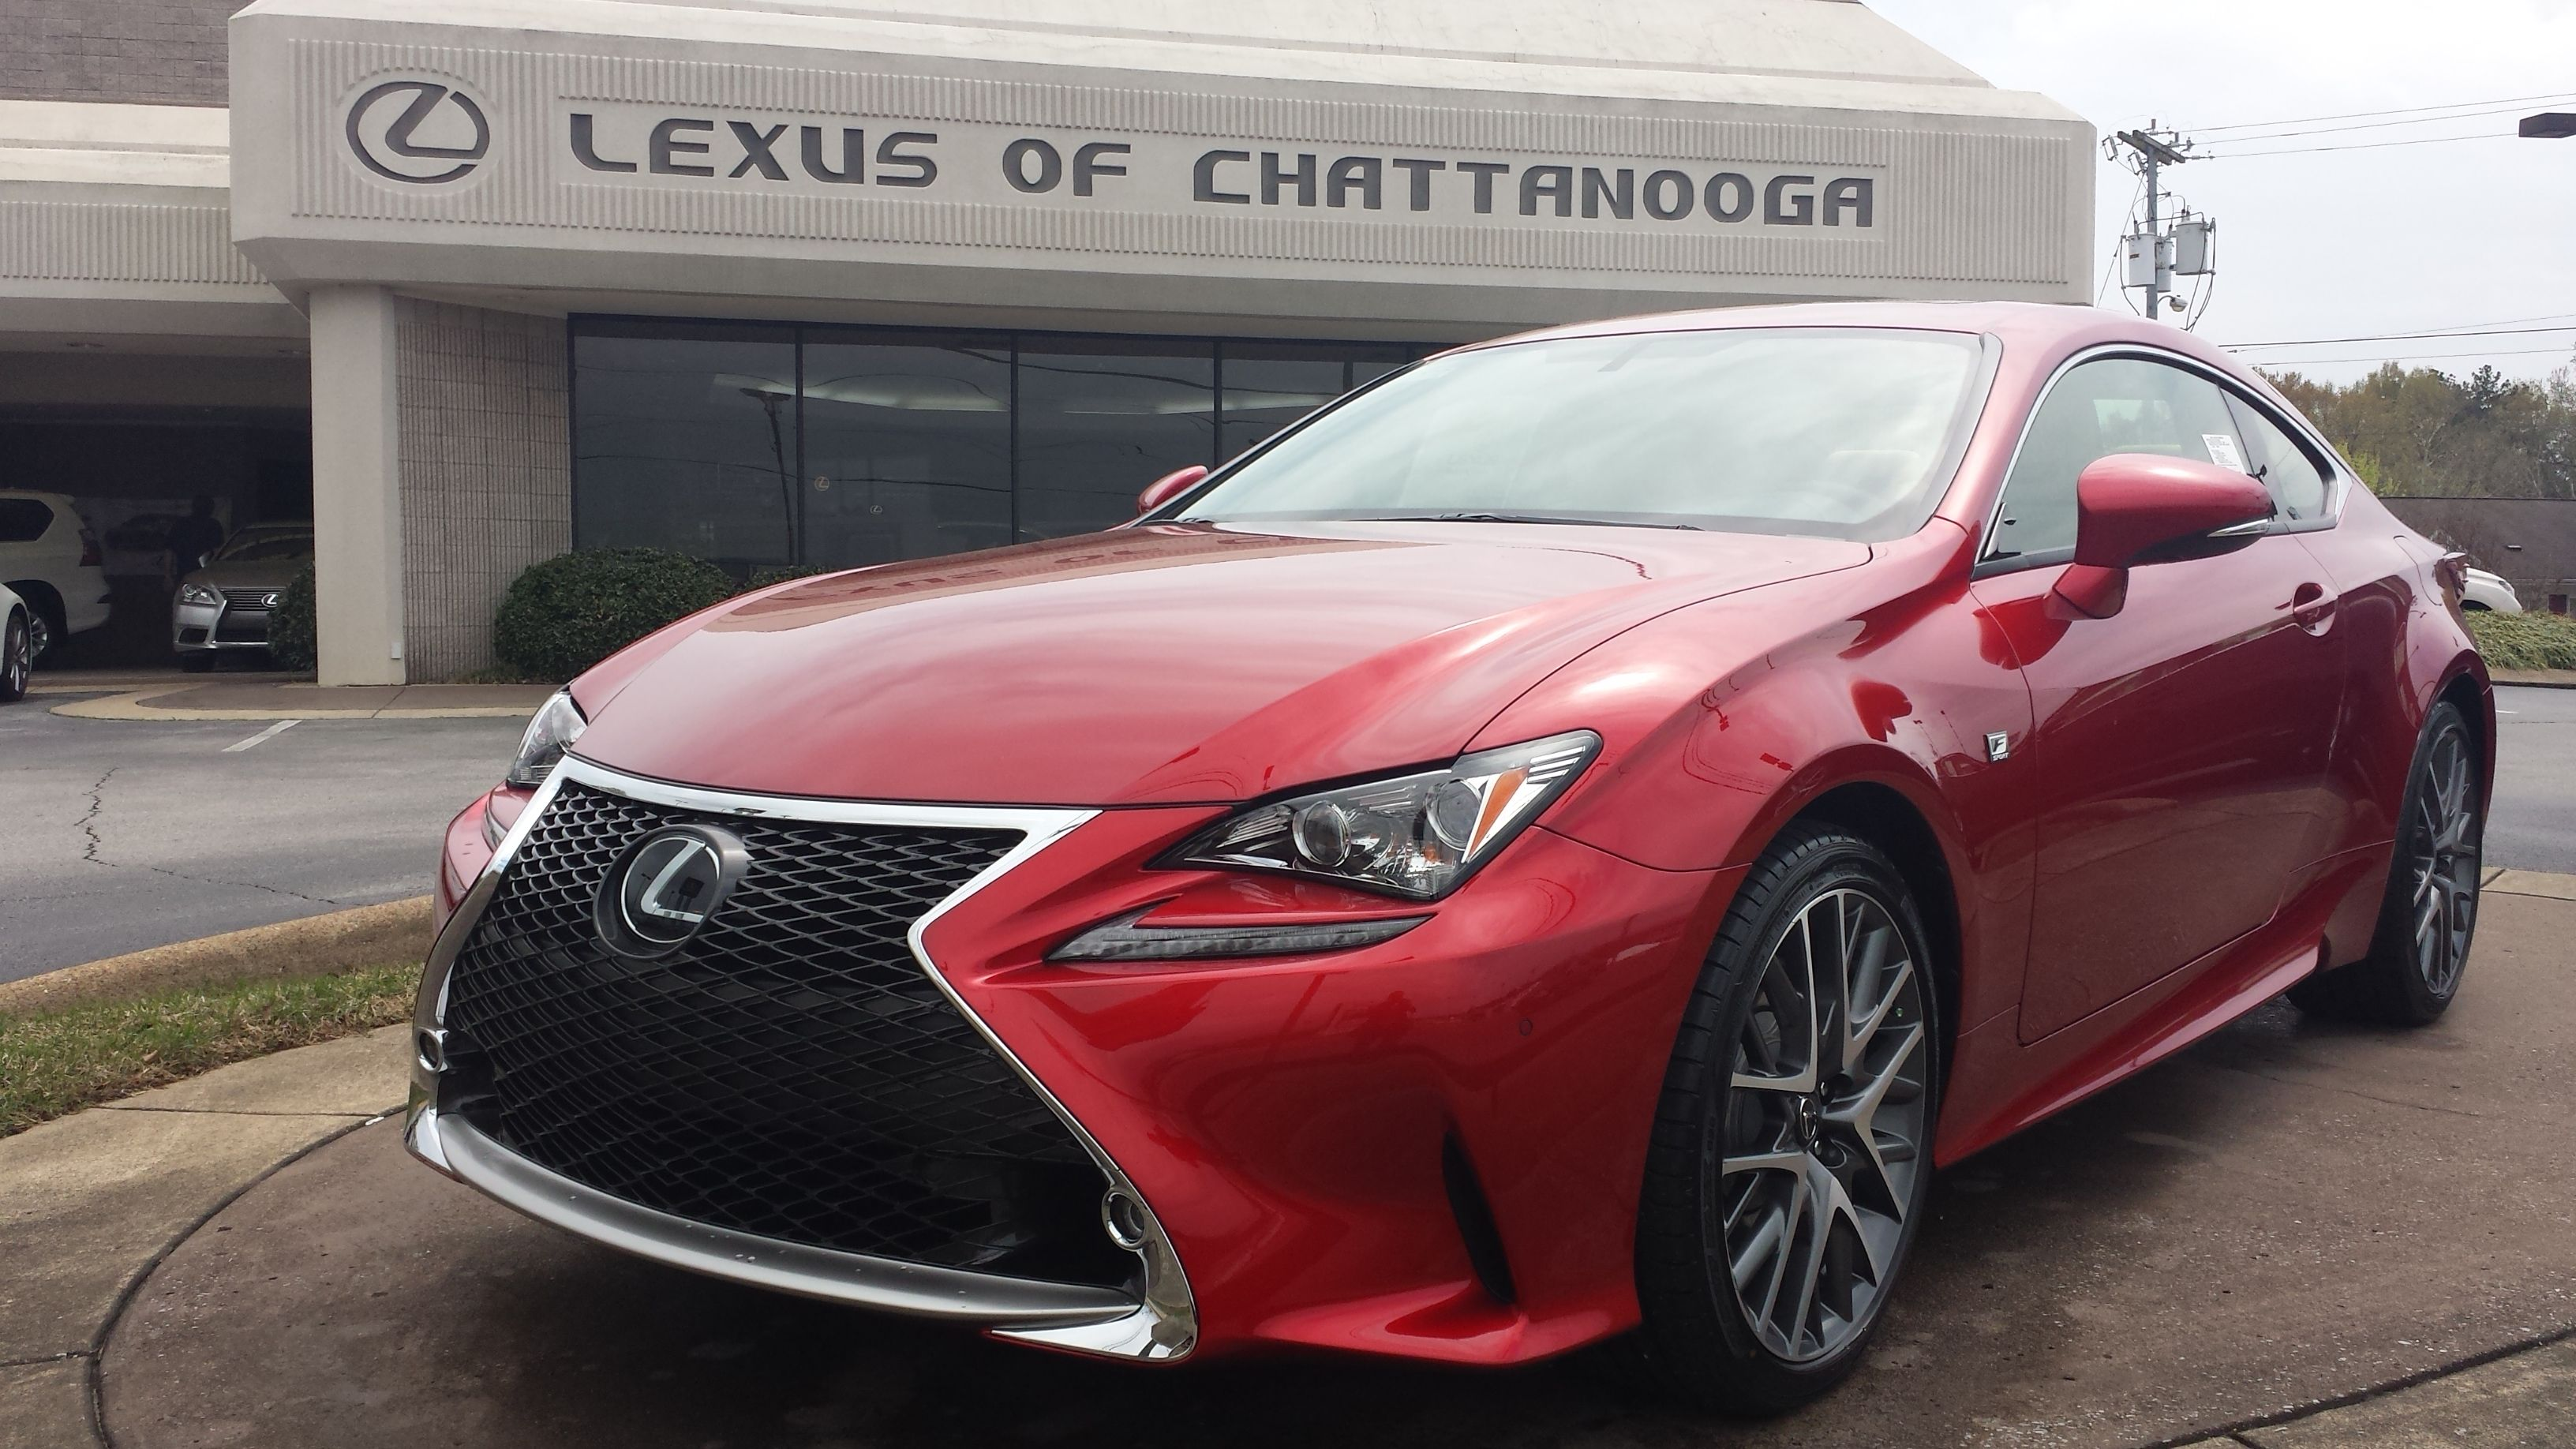 Check out this sick Lexus RC and all our other FSport